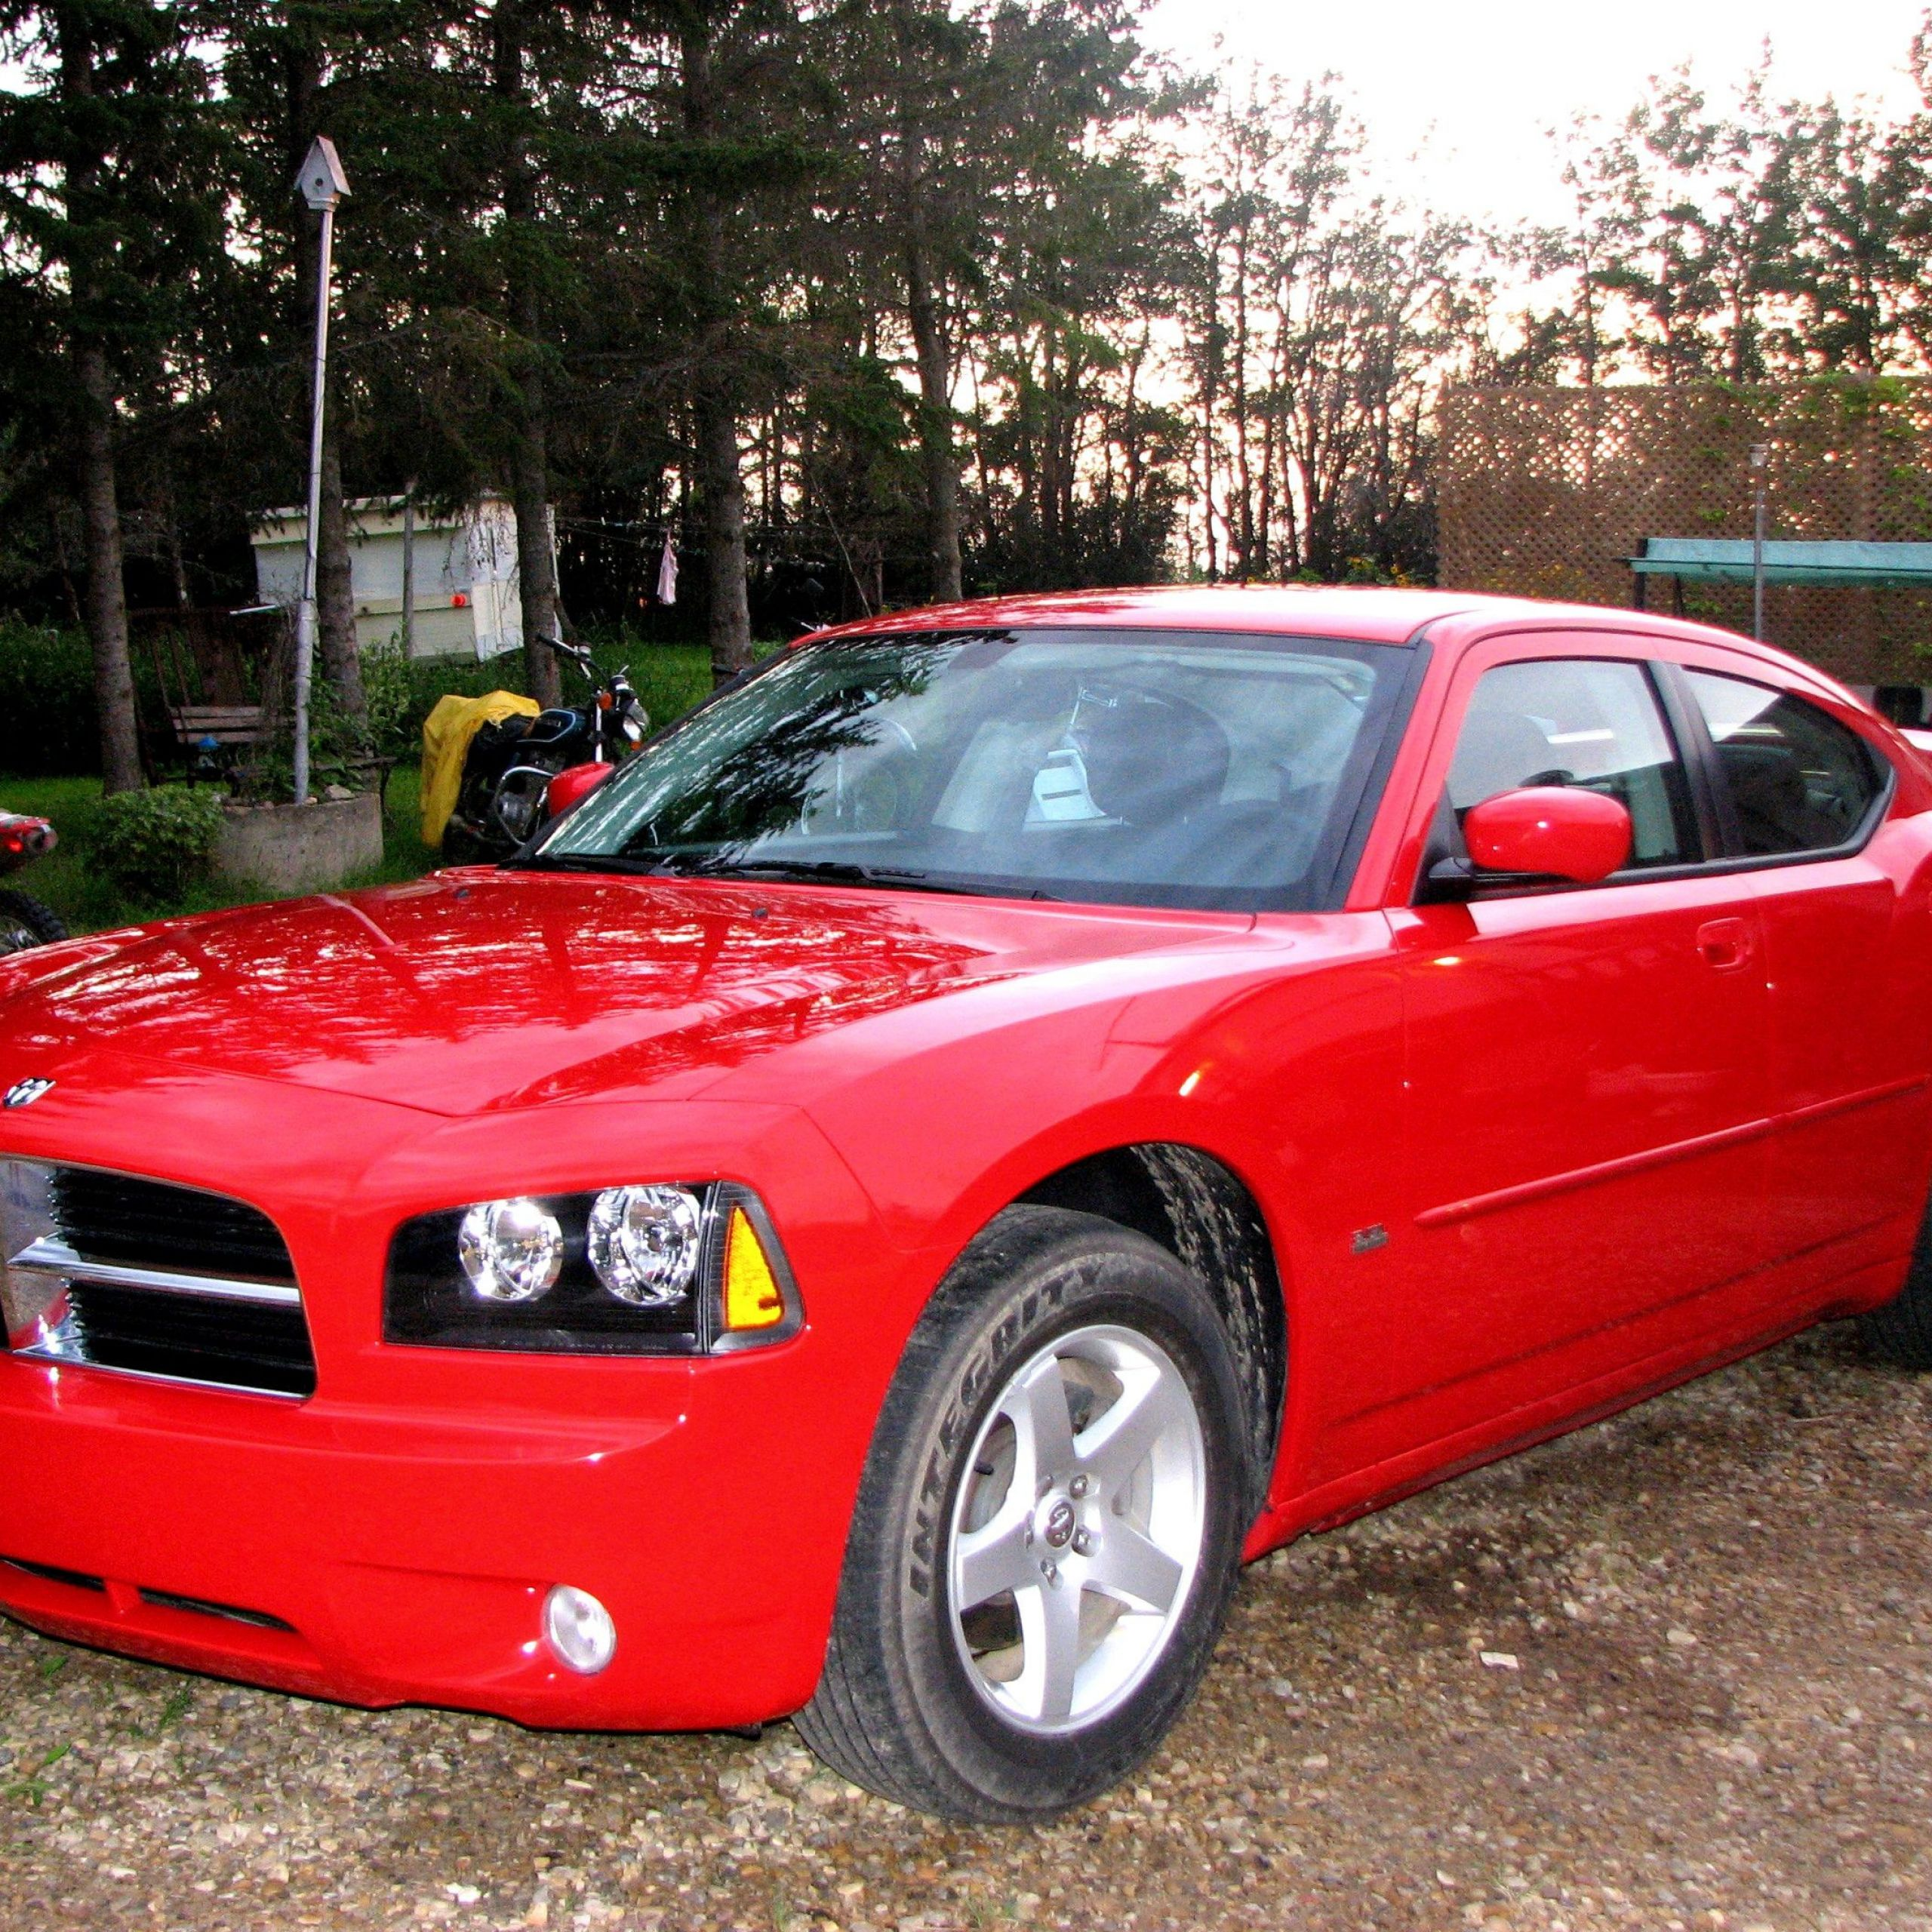 2006 Dodge Charger Inspirational 2010 Dodge Charger Sxt In torred is is A